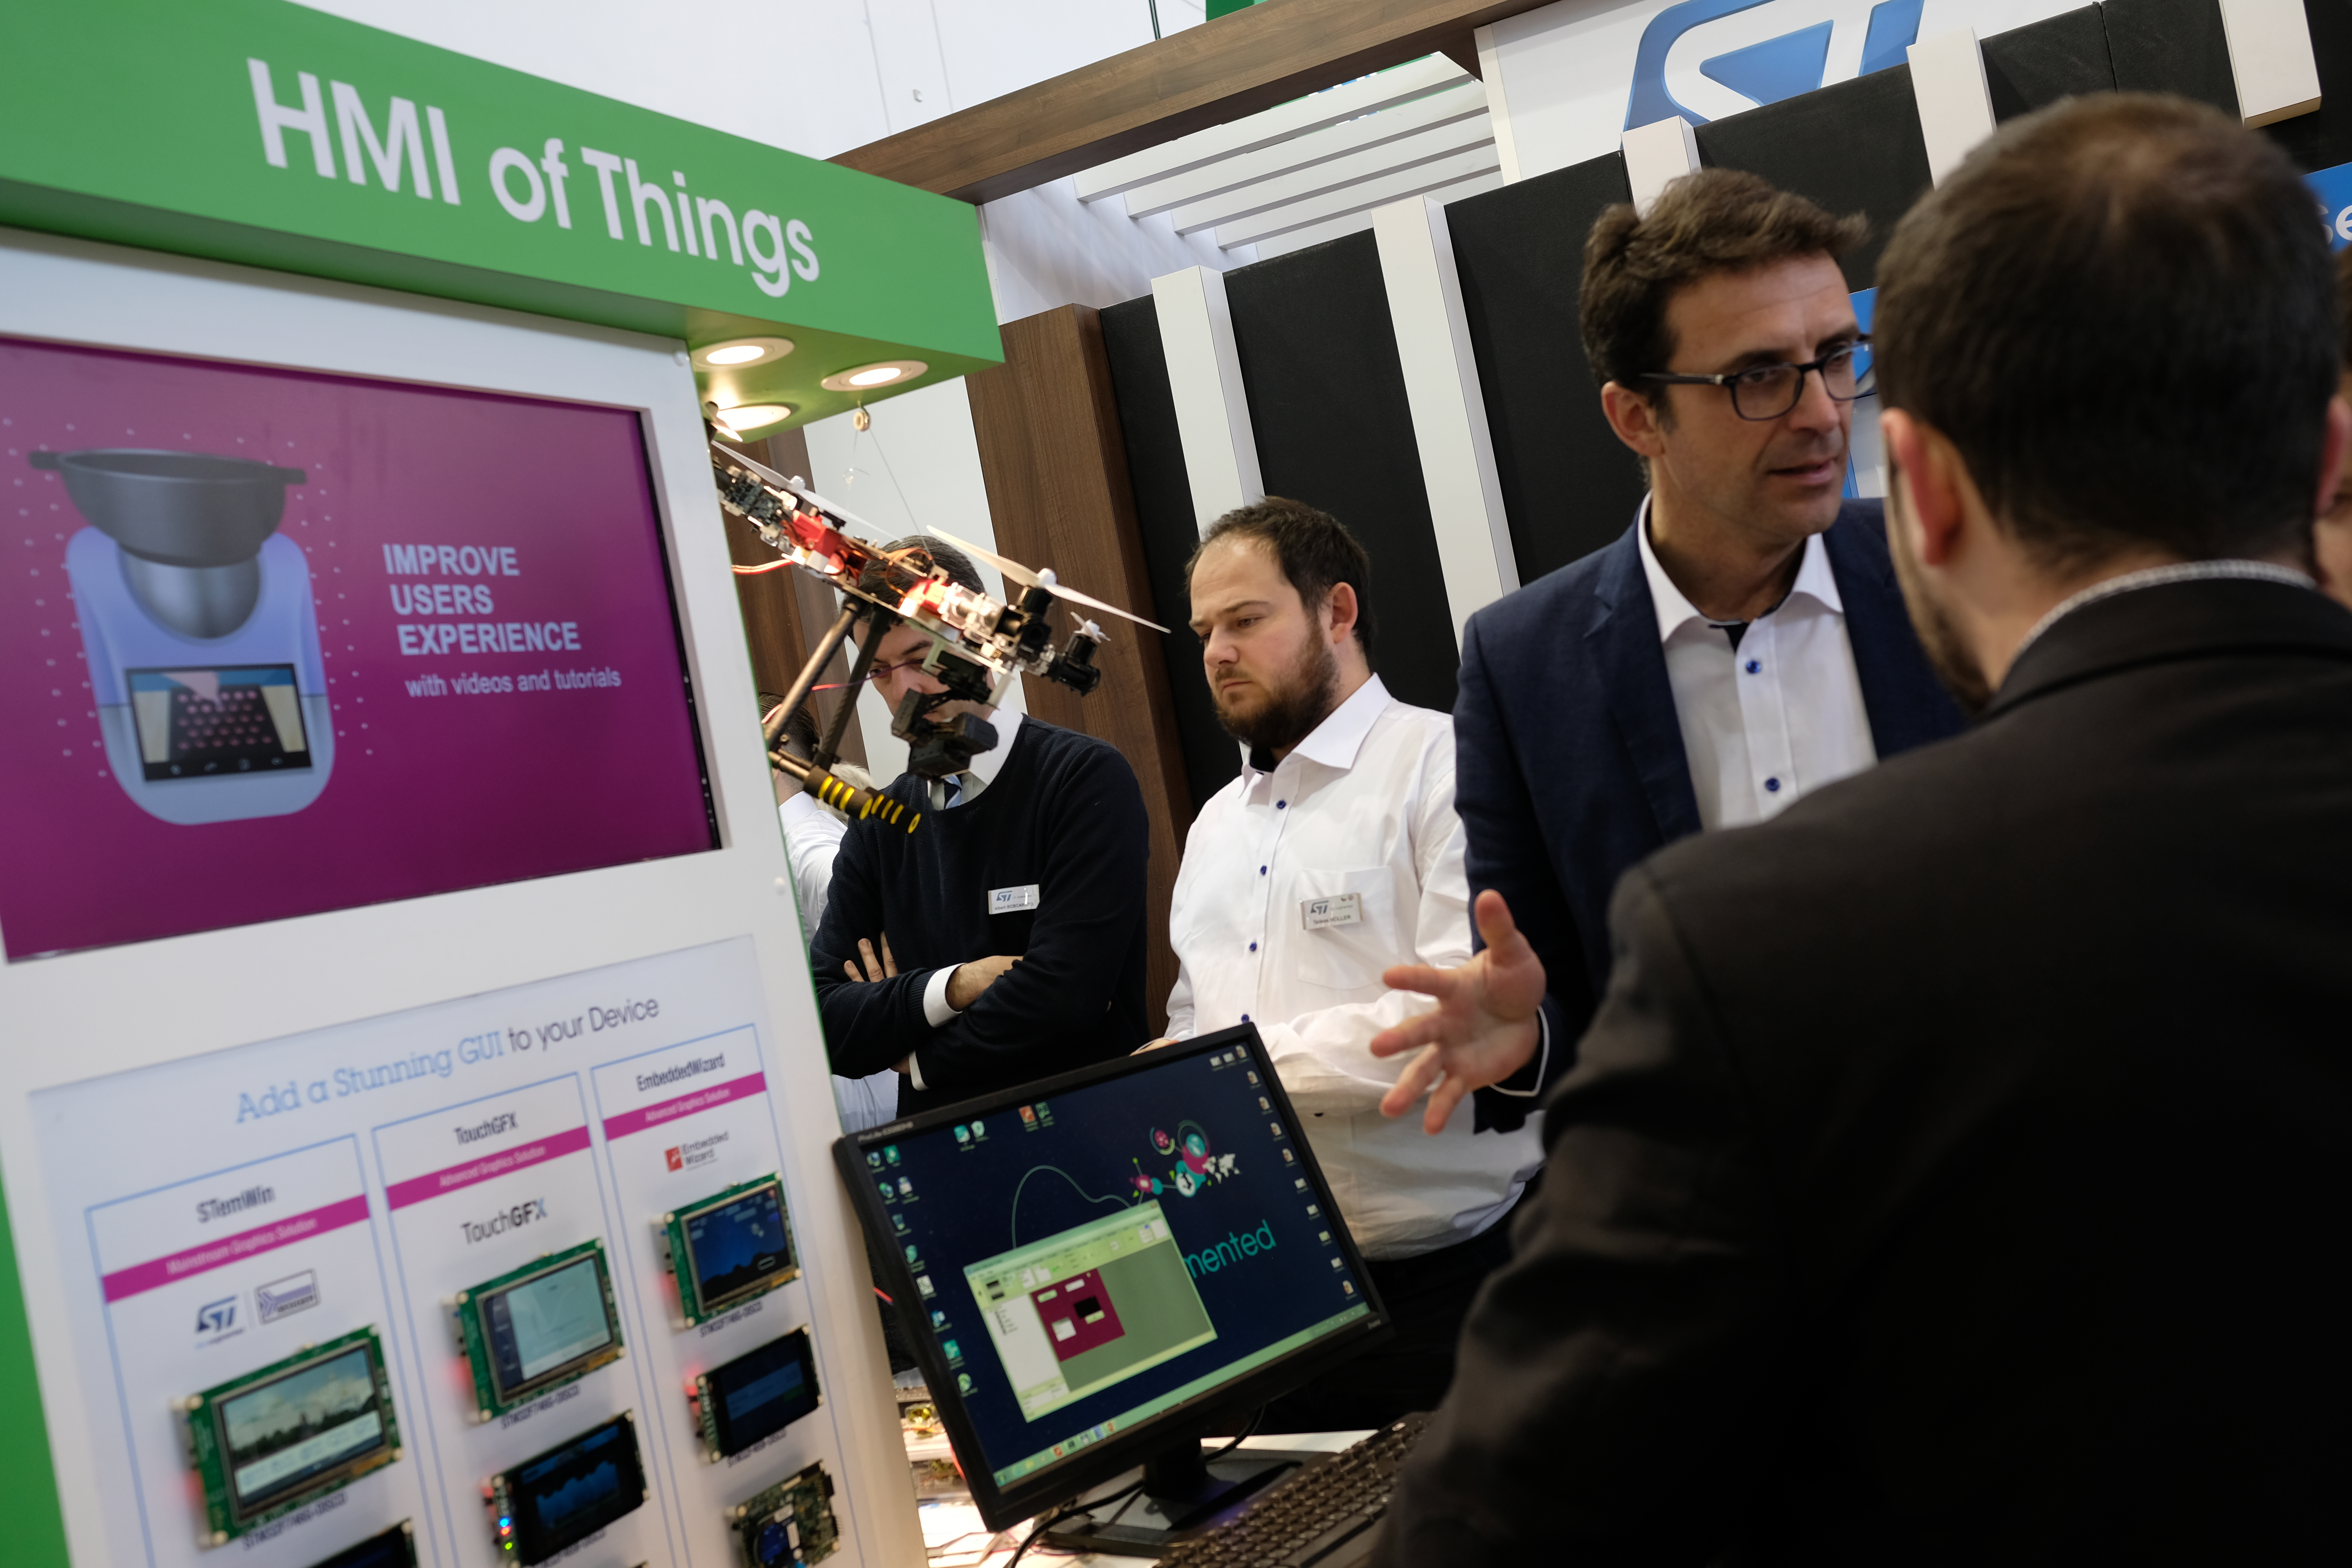 Embedded World 2018: In picture form